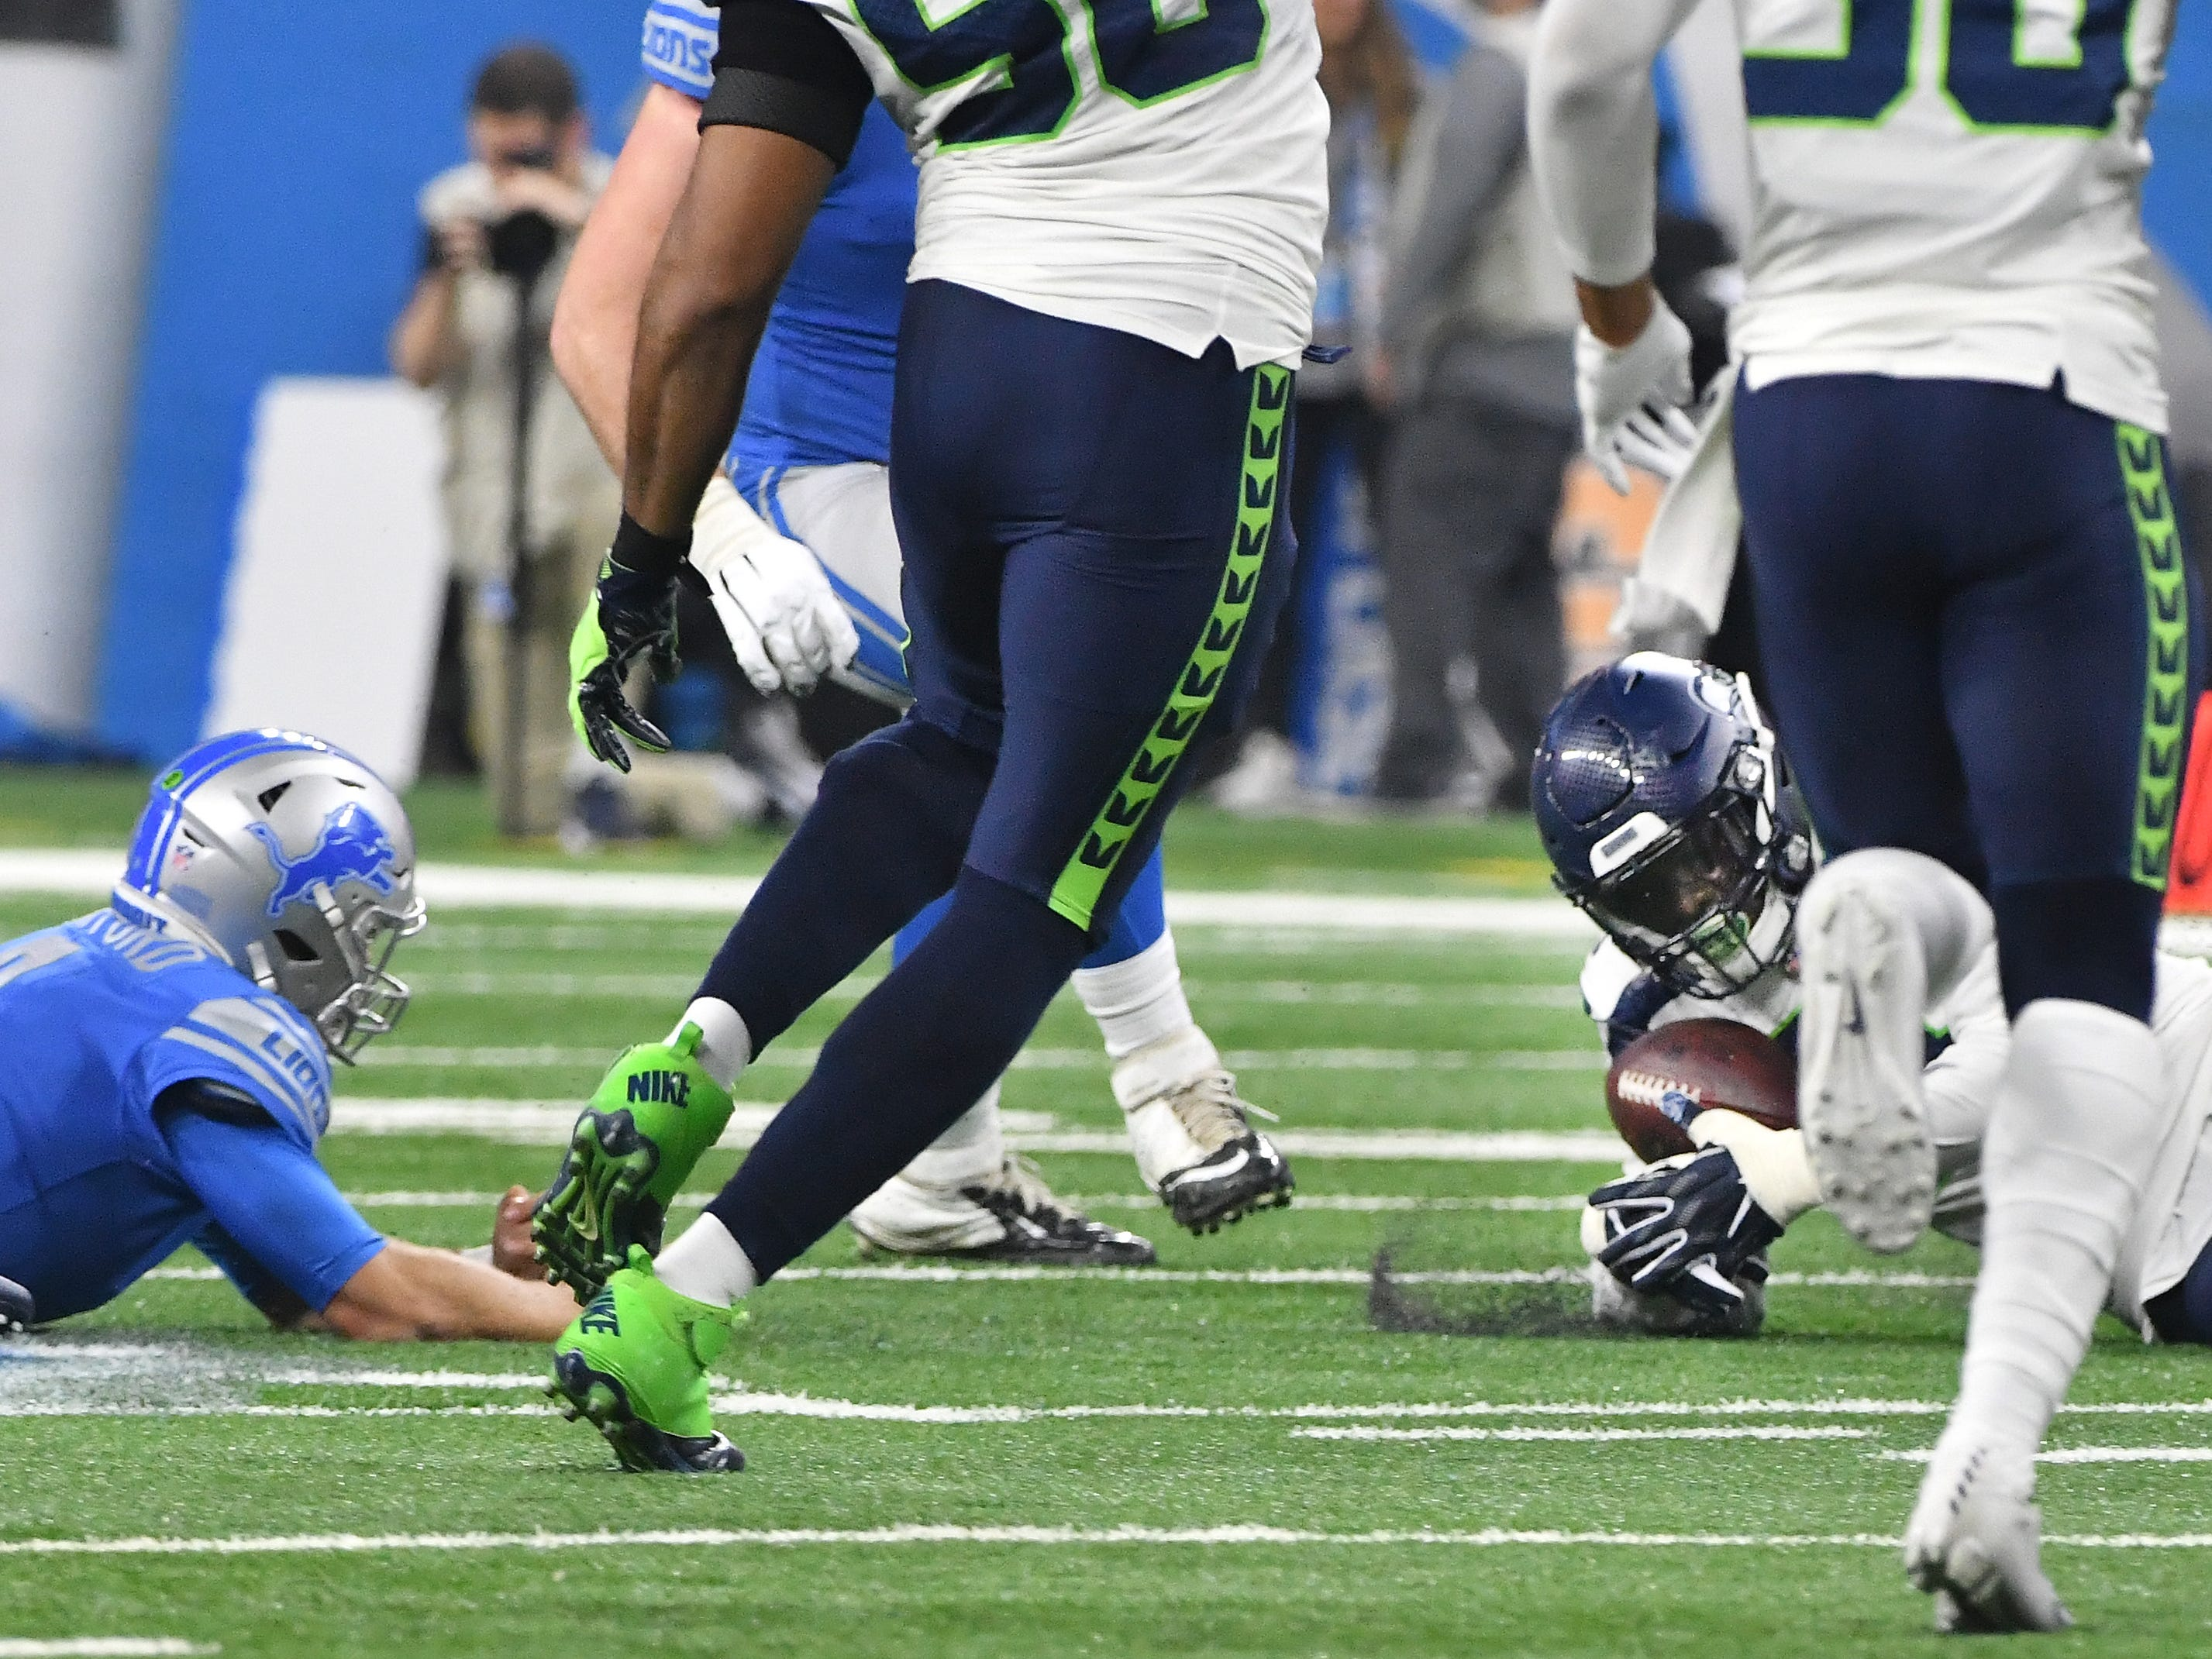 Lions quarterback Matthew Stafford fumbles the ball with Seattles' Frank Clark recovering in the fourth quarter.